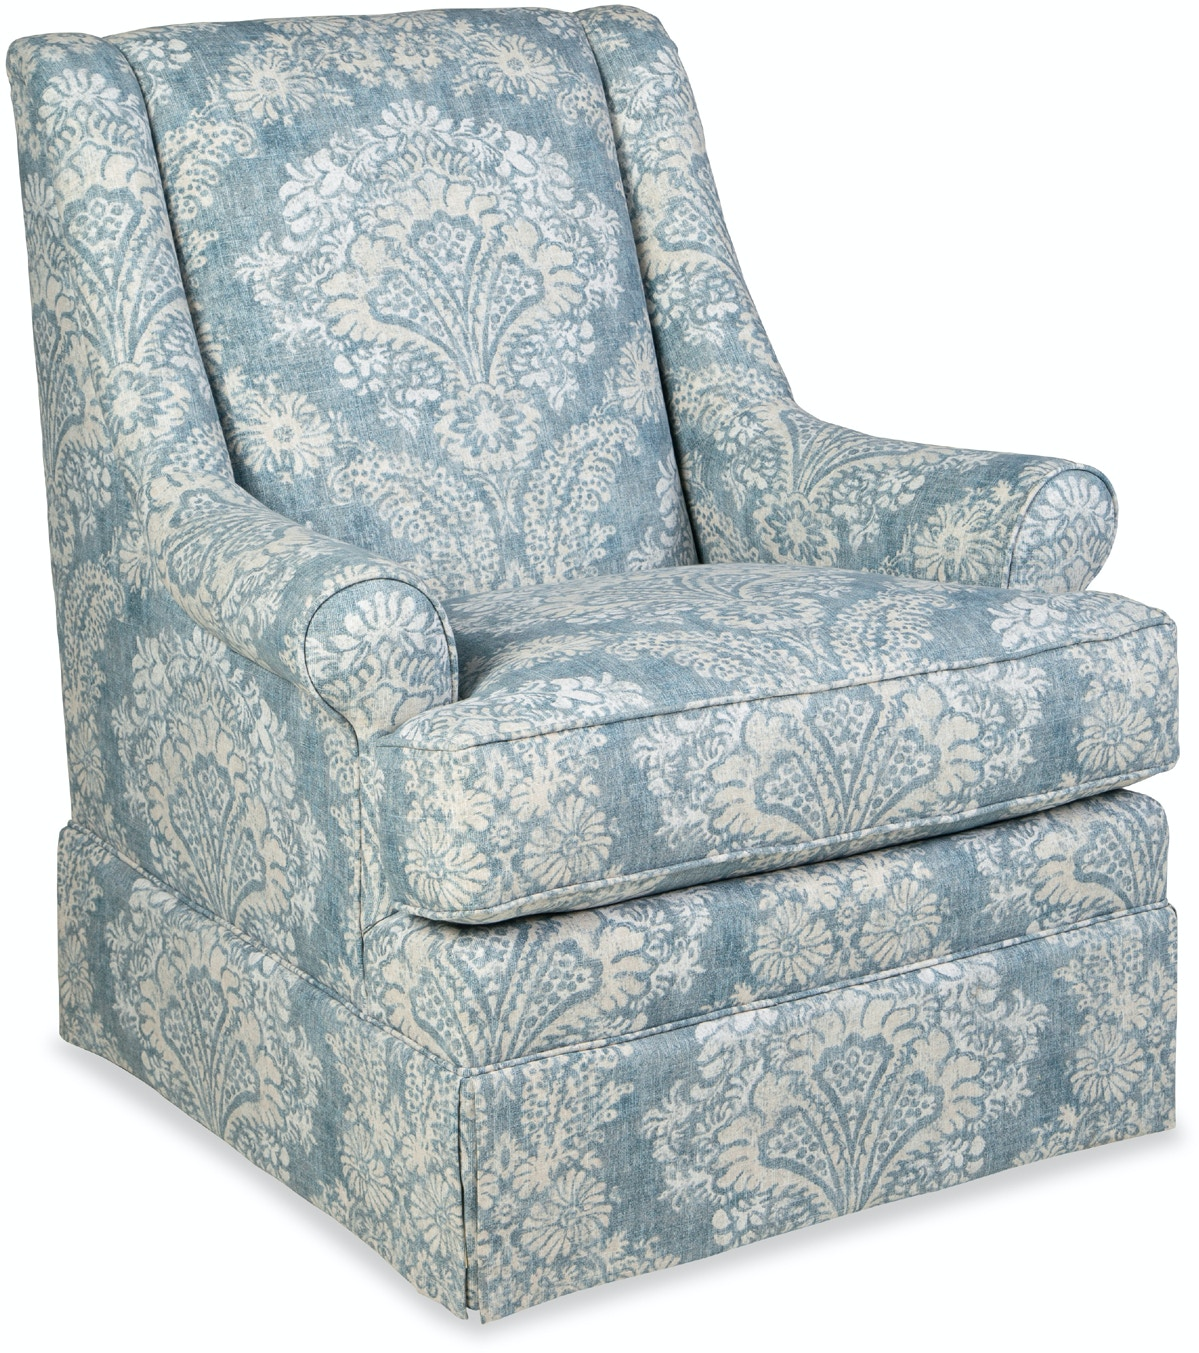 Paula Deen By Craftmaster Living Room Swivel Glider Chair